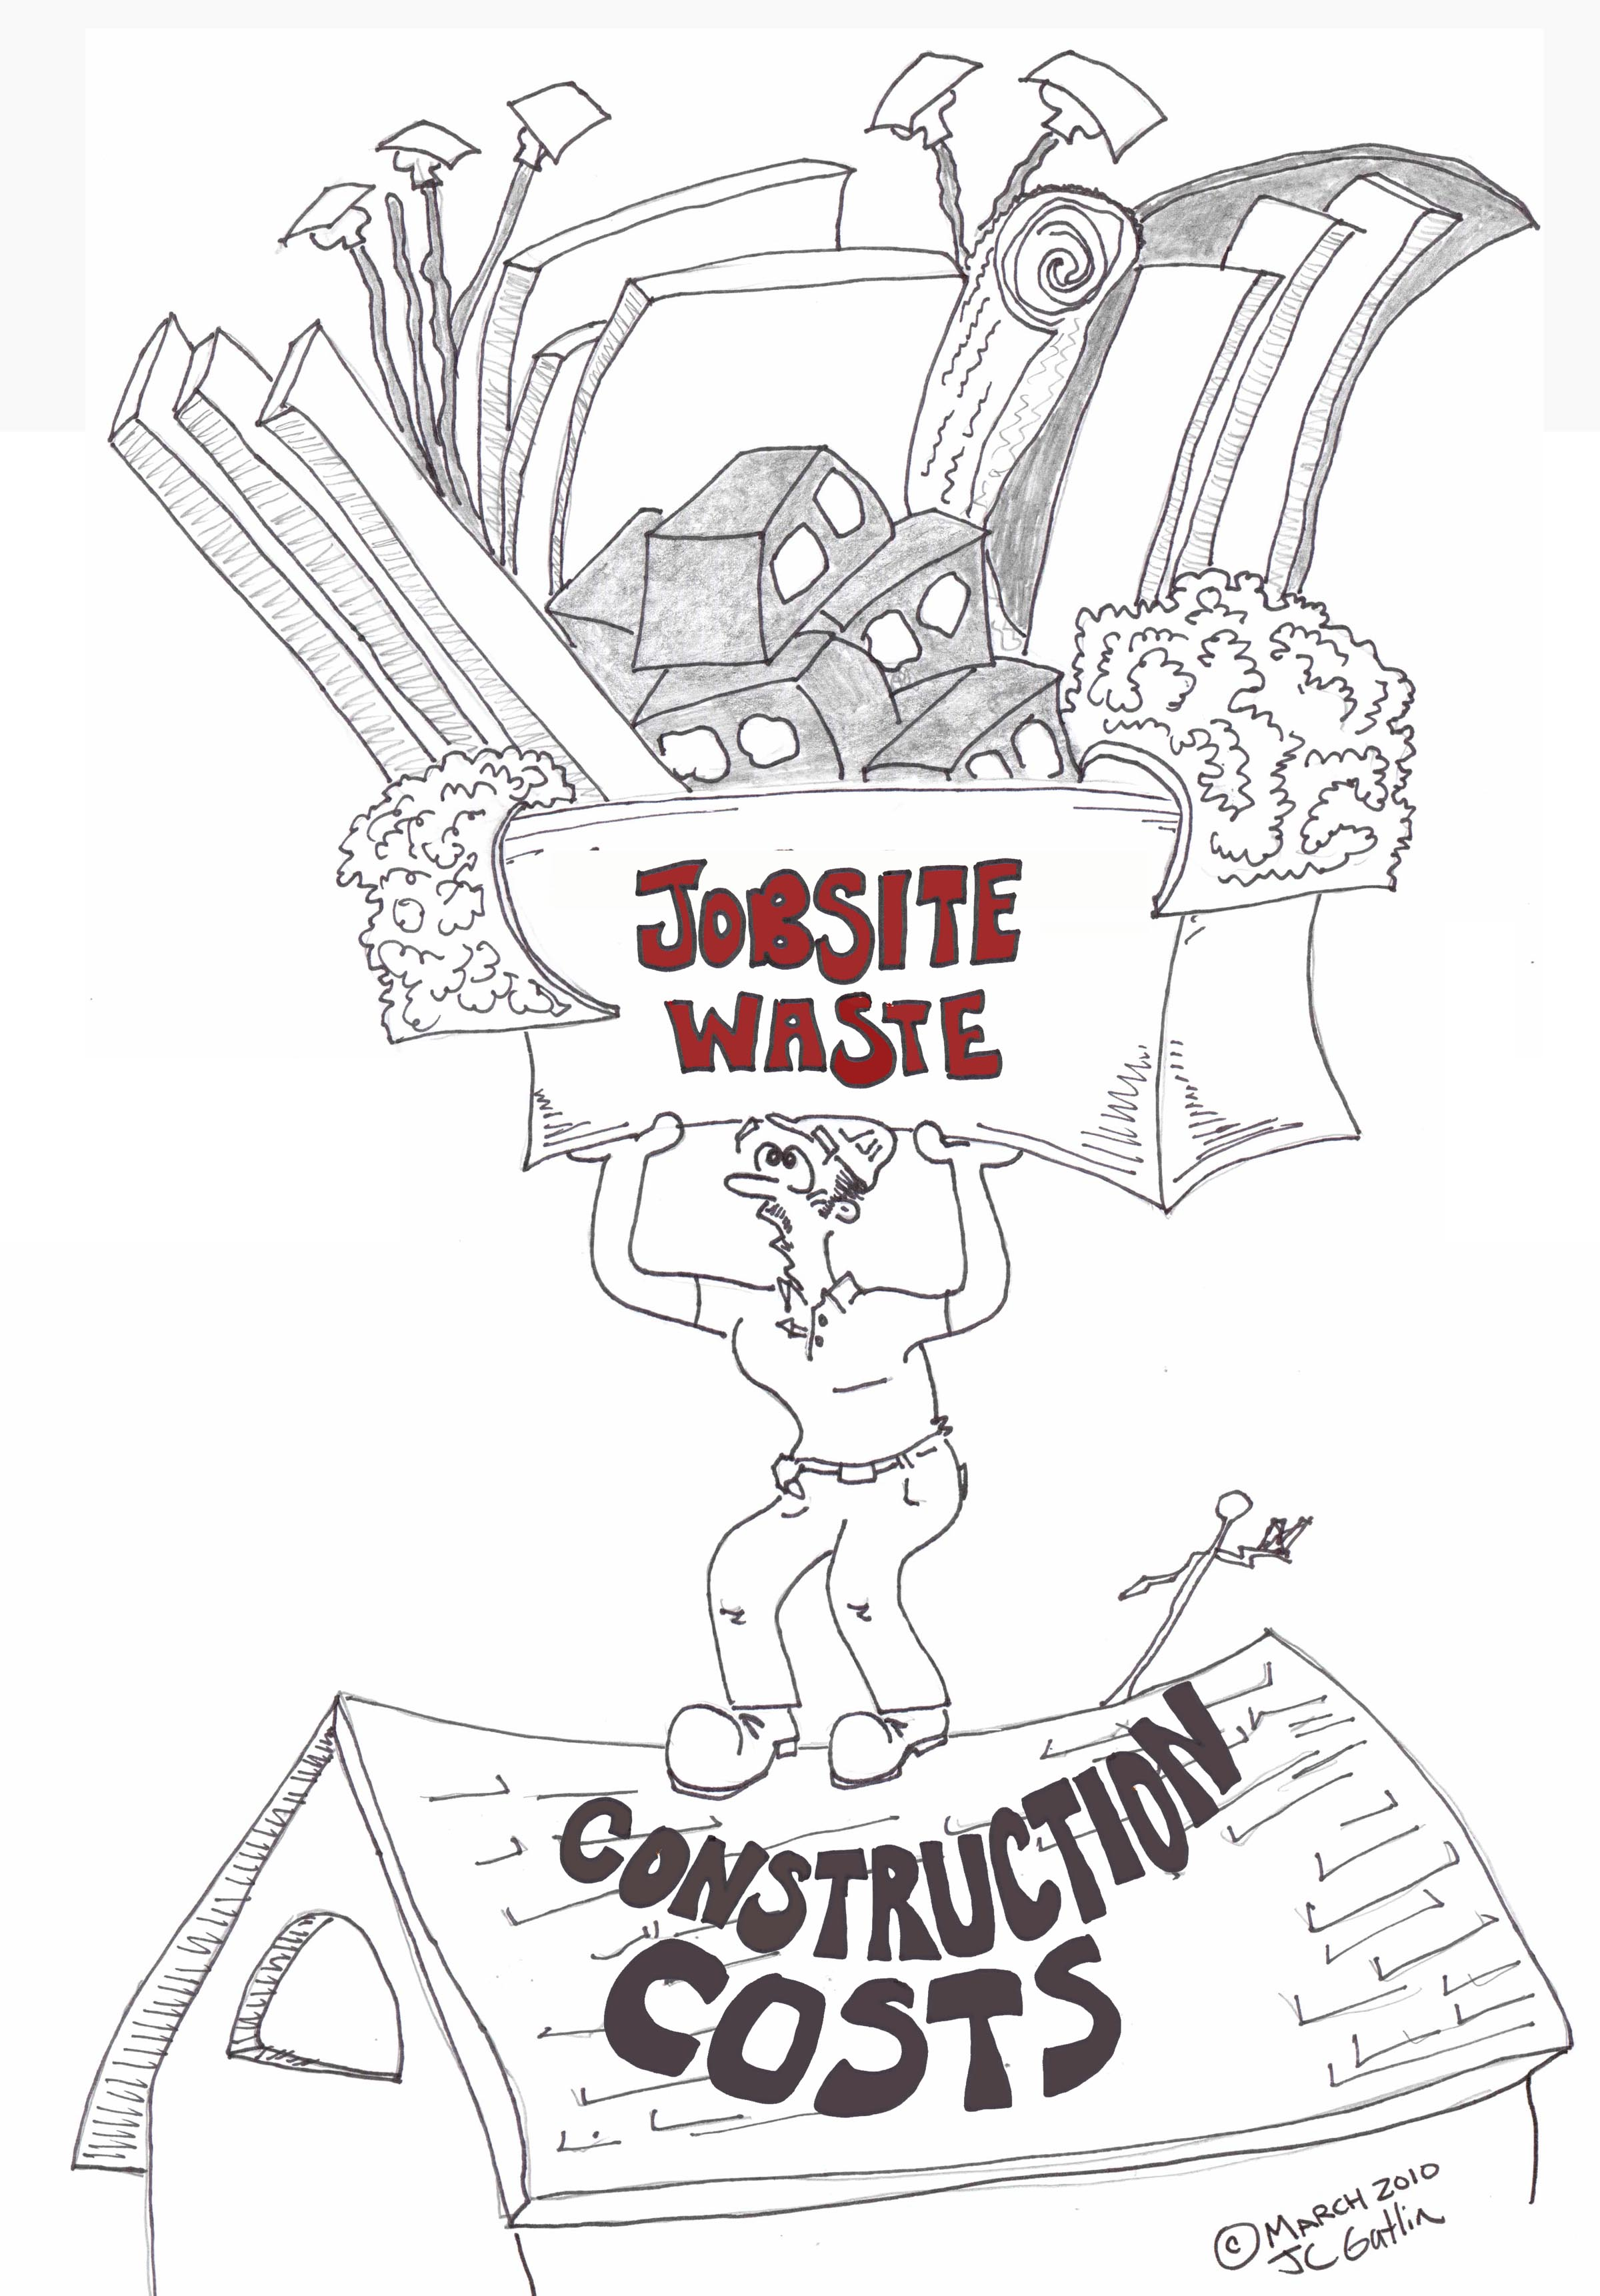 Construction Cost Reduction Starts On The Jobsite